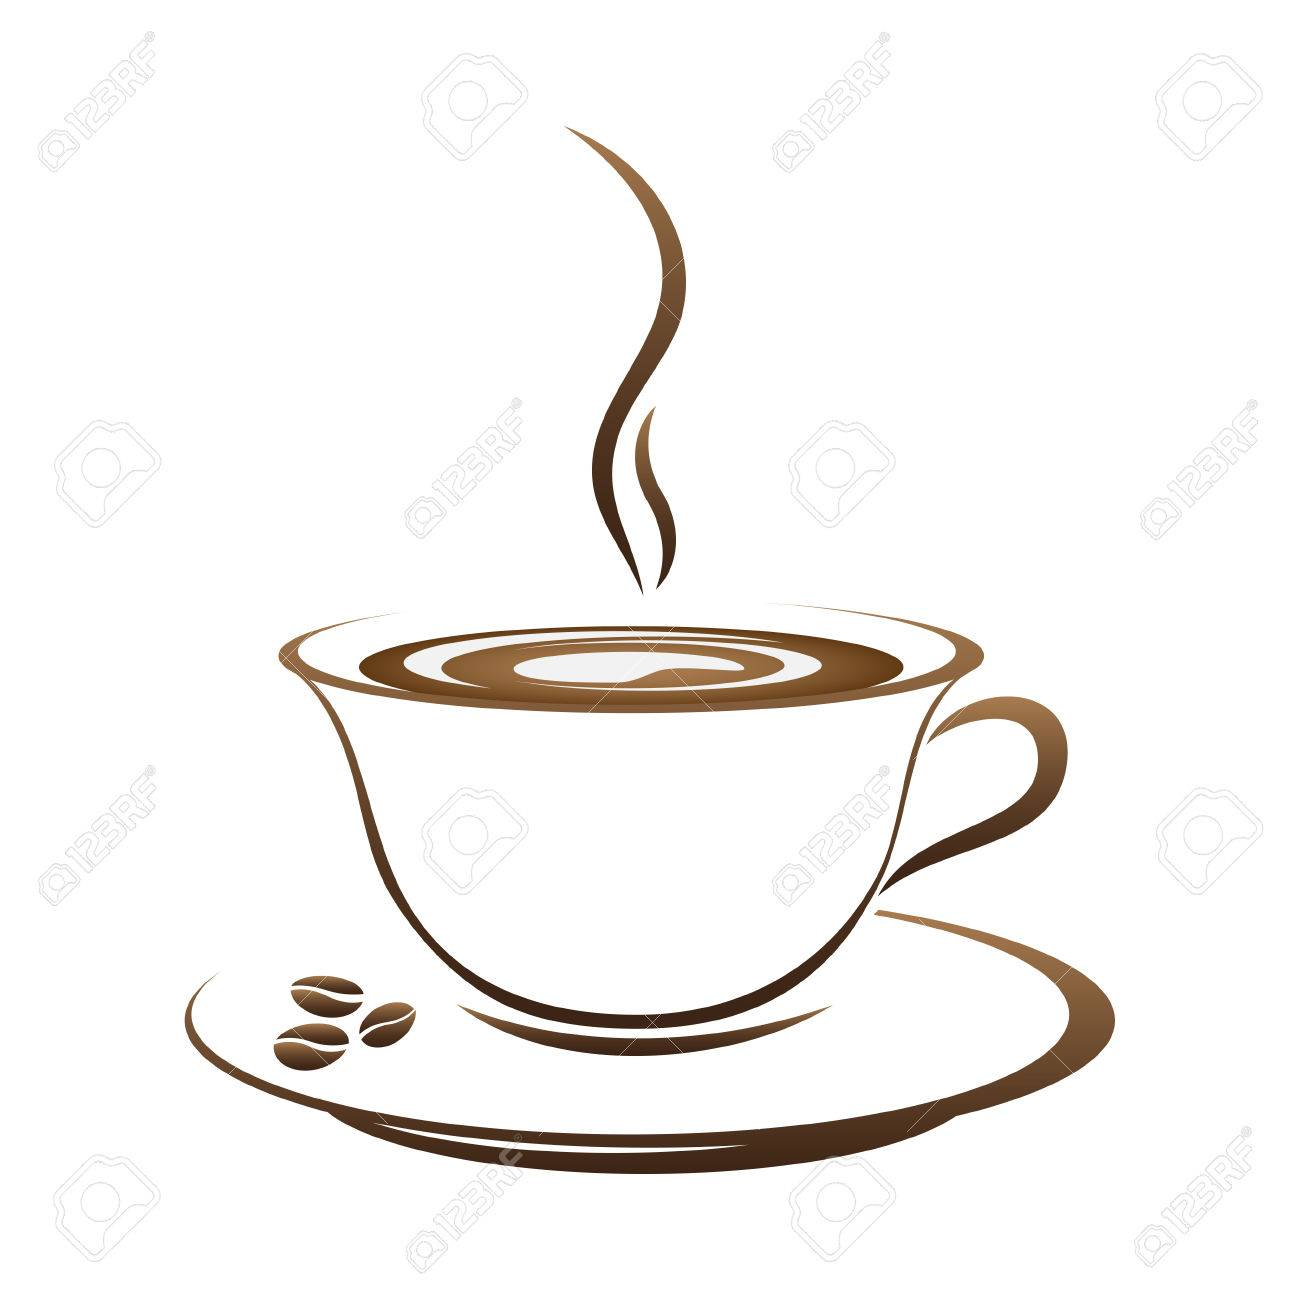 hot coffee cup vector on a white background royalty free cliparts rh 123rf com cup vector ai cup vector file